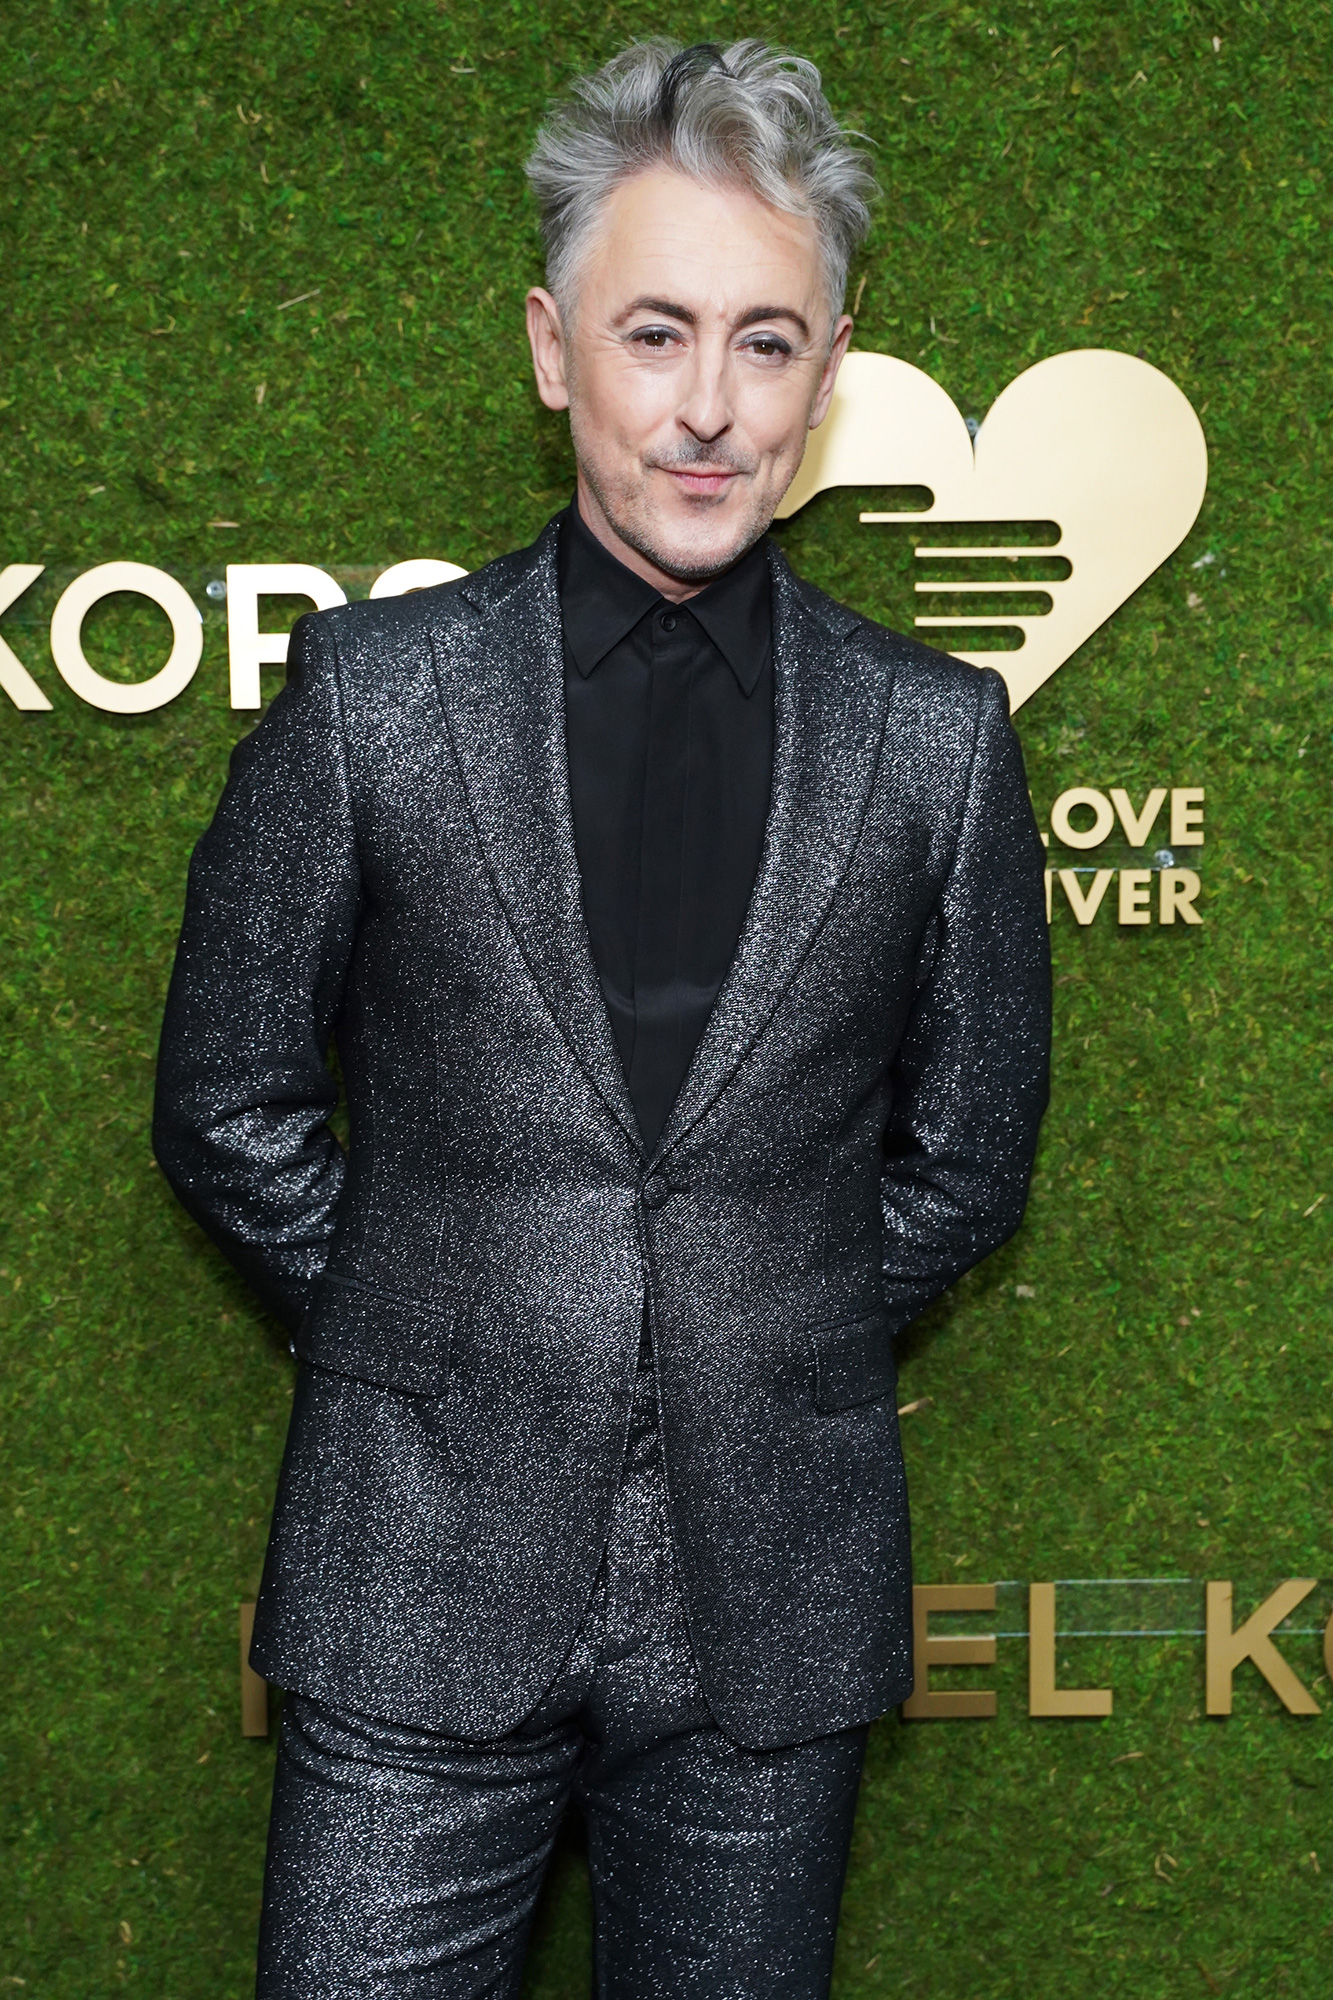 Alan Cumming attends the Golden Heart Awards 2021 benefiting God's Love We Deliver at The Glasshouse on October 18, 2021 in New York City.